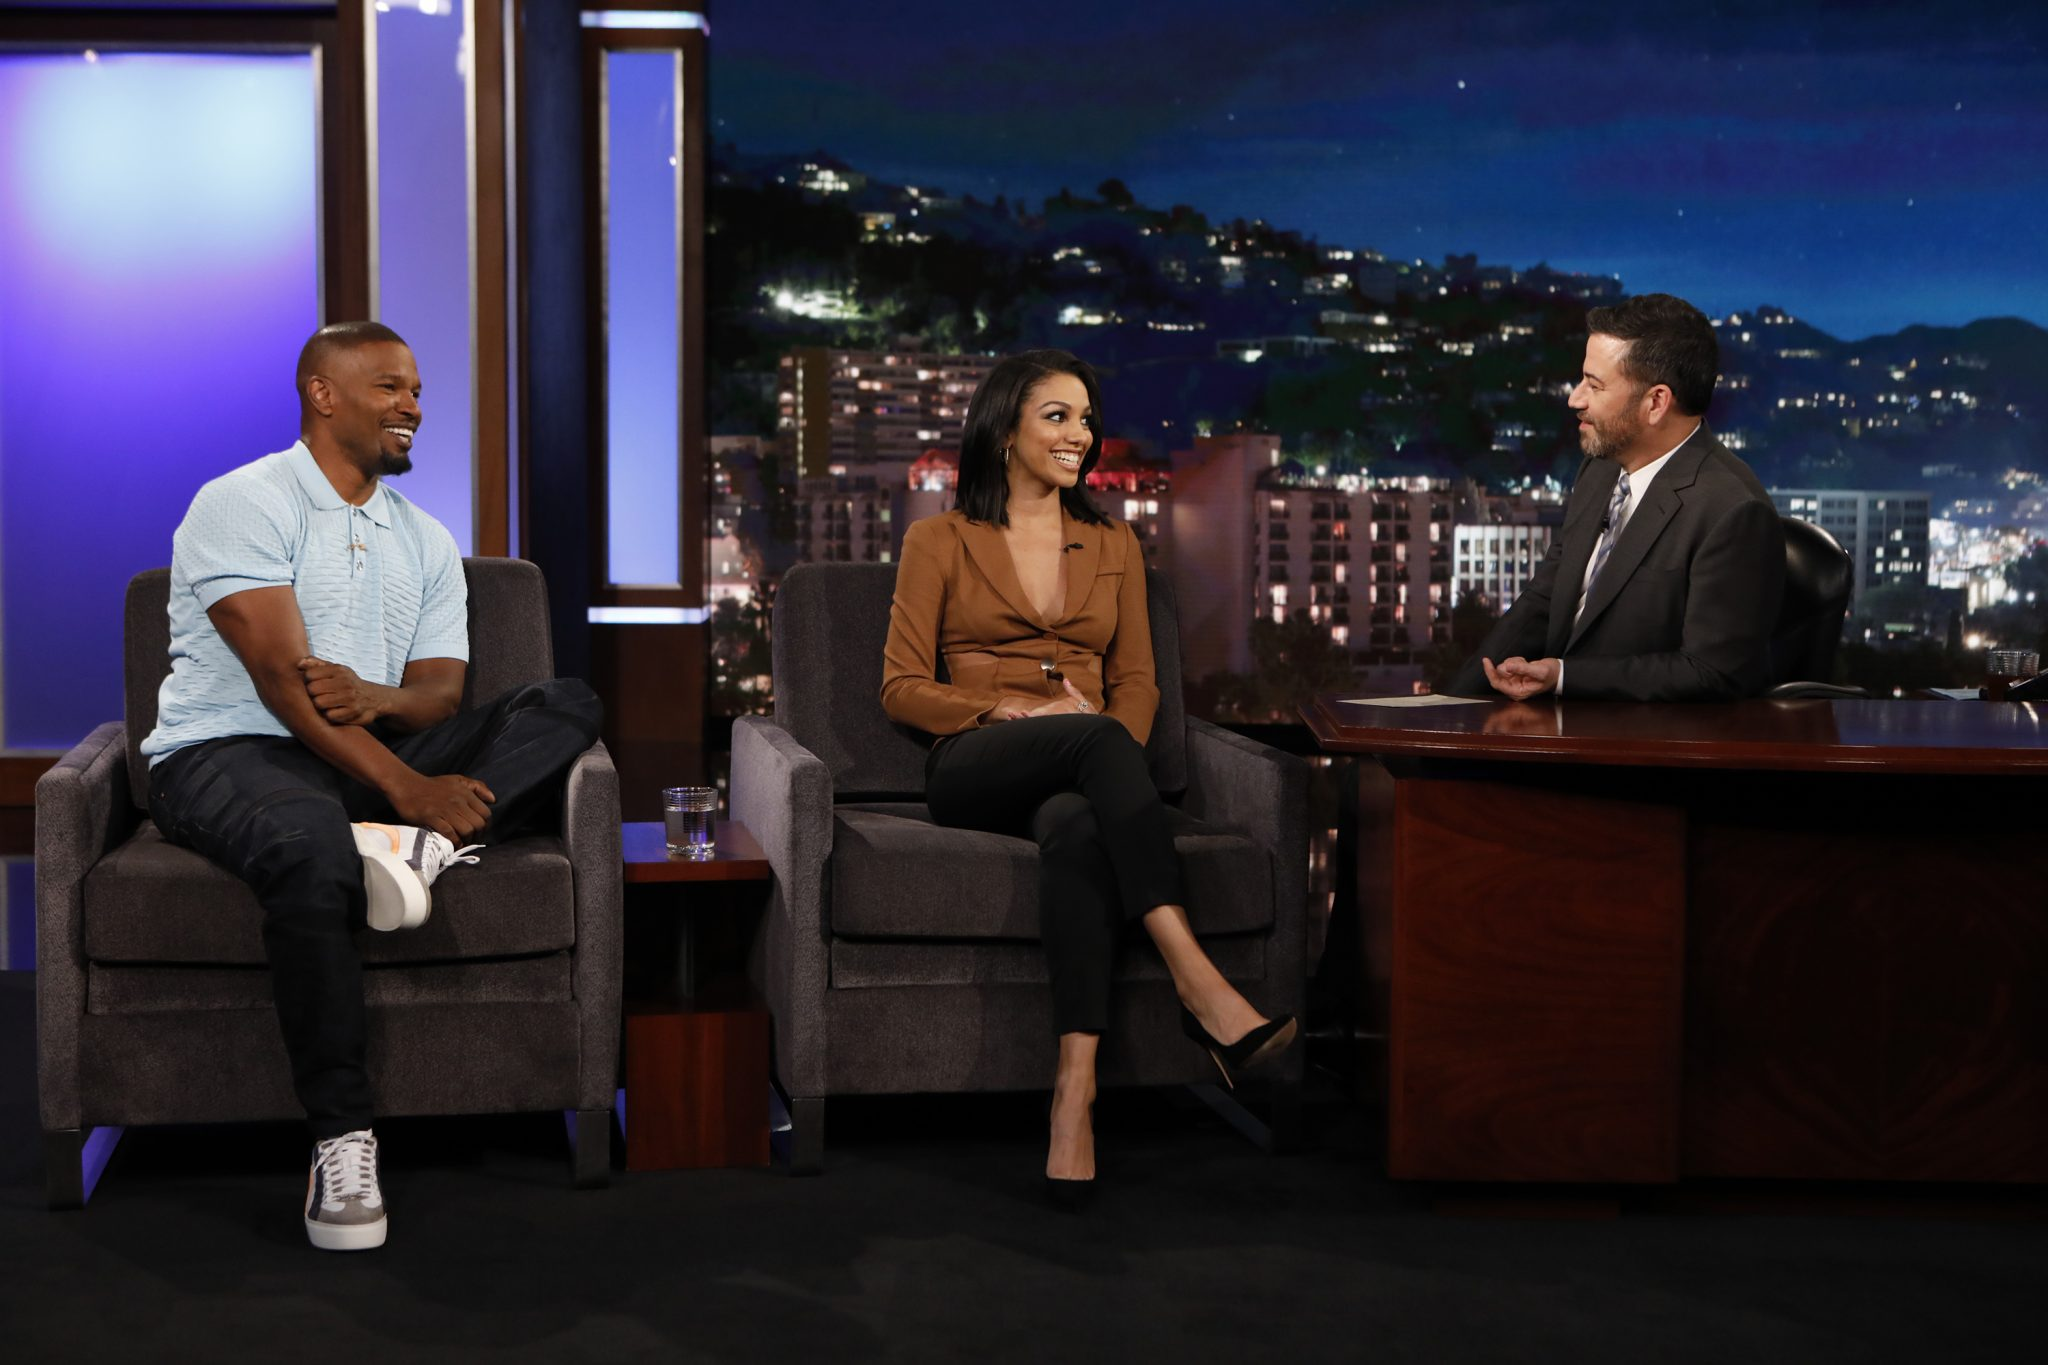 In Case You Missed It: Jamie and Corinne Foxx On Jimmy Kimmel Live